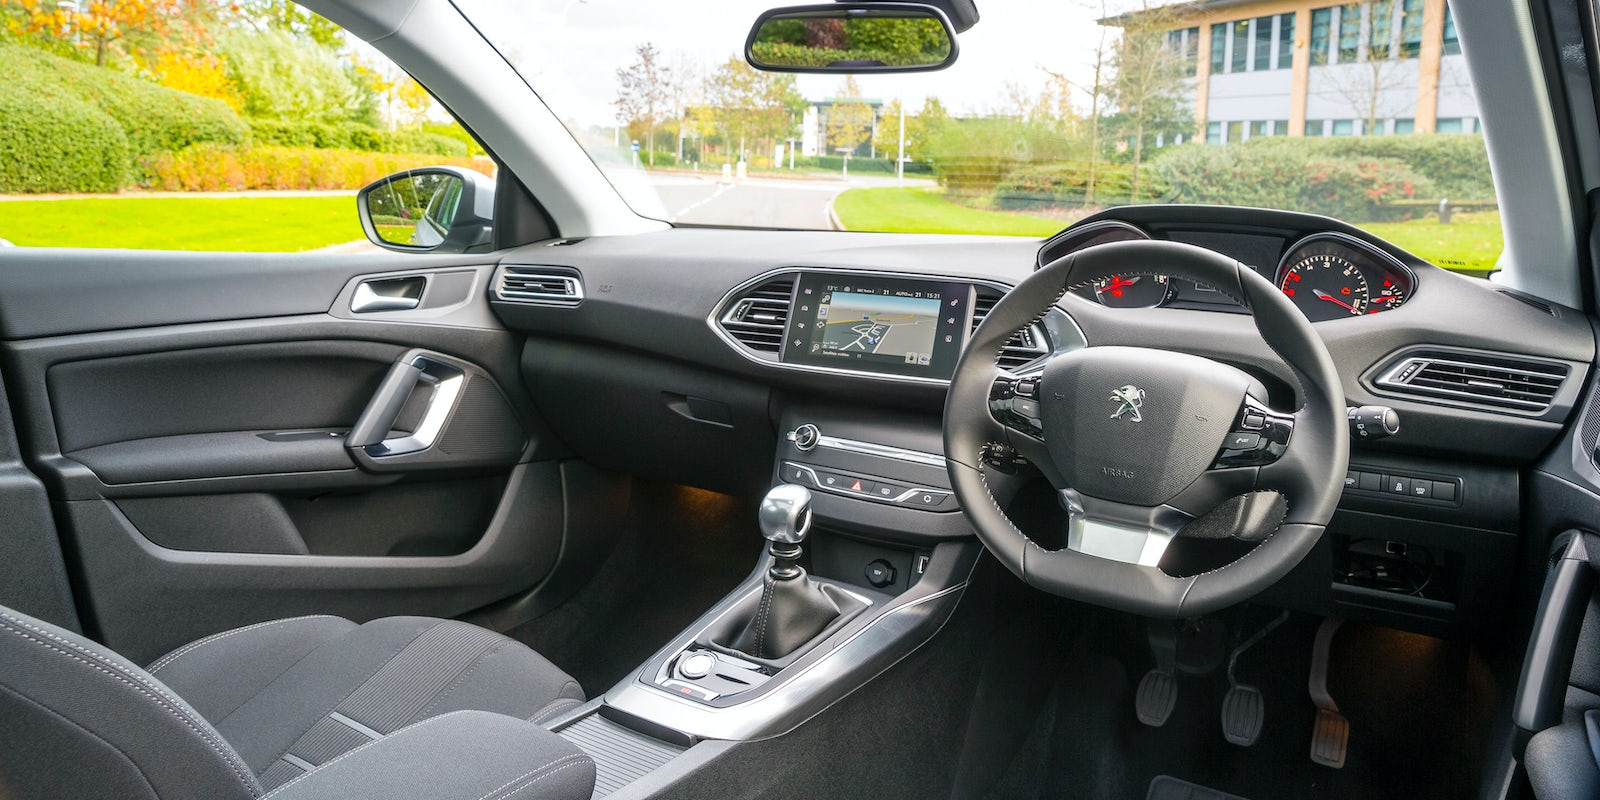 Peugeot 308 review carwow for Interior peugeot 308